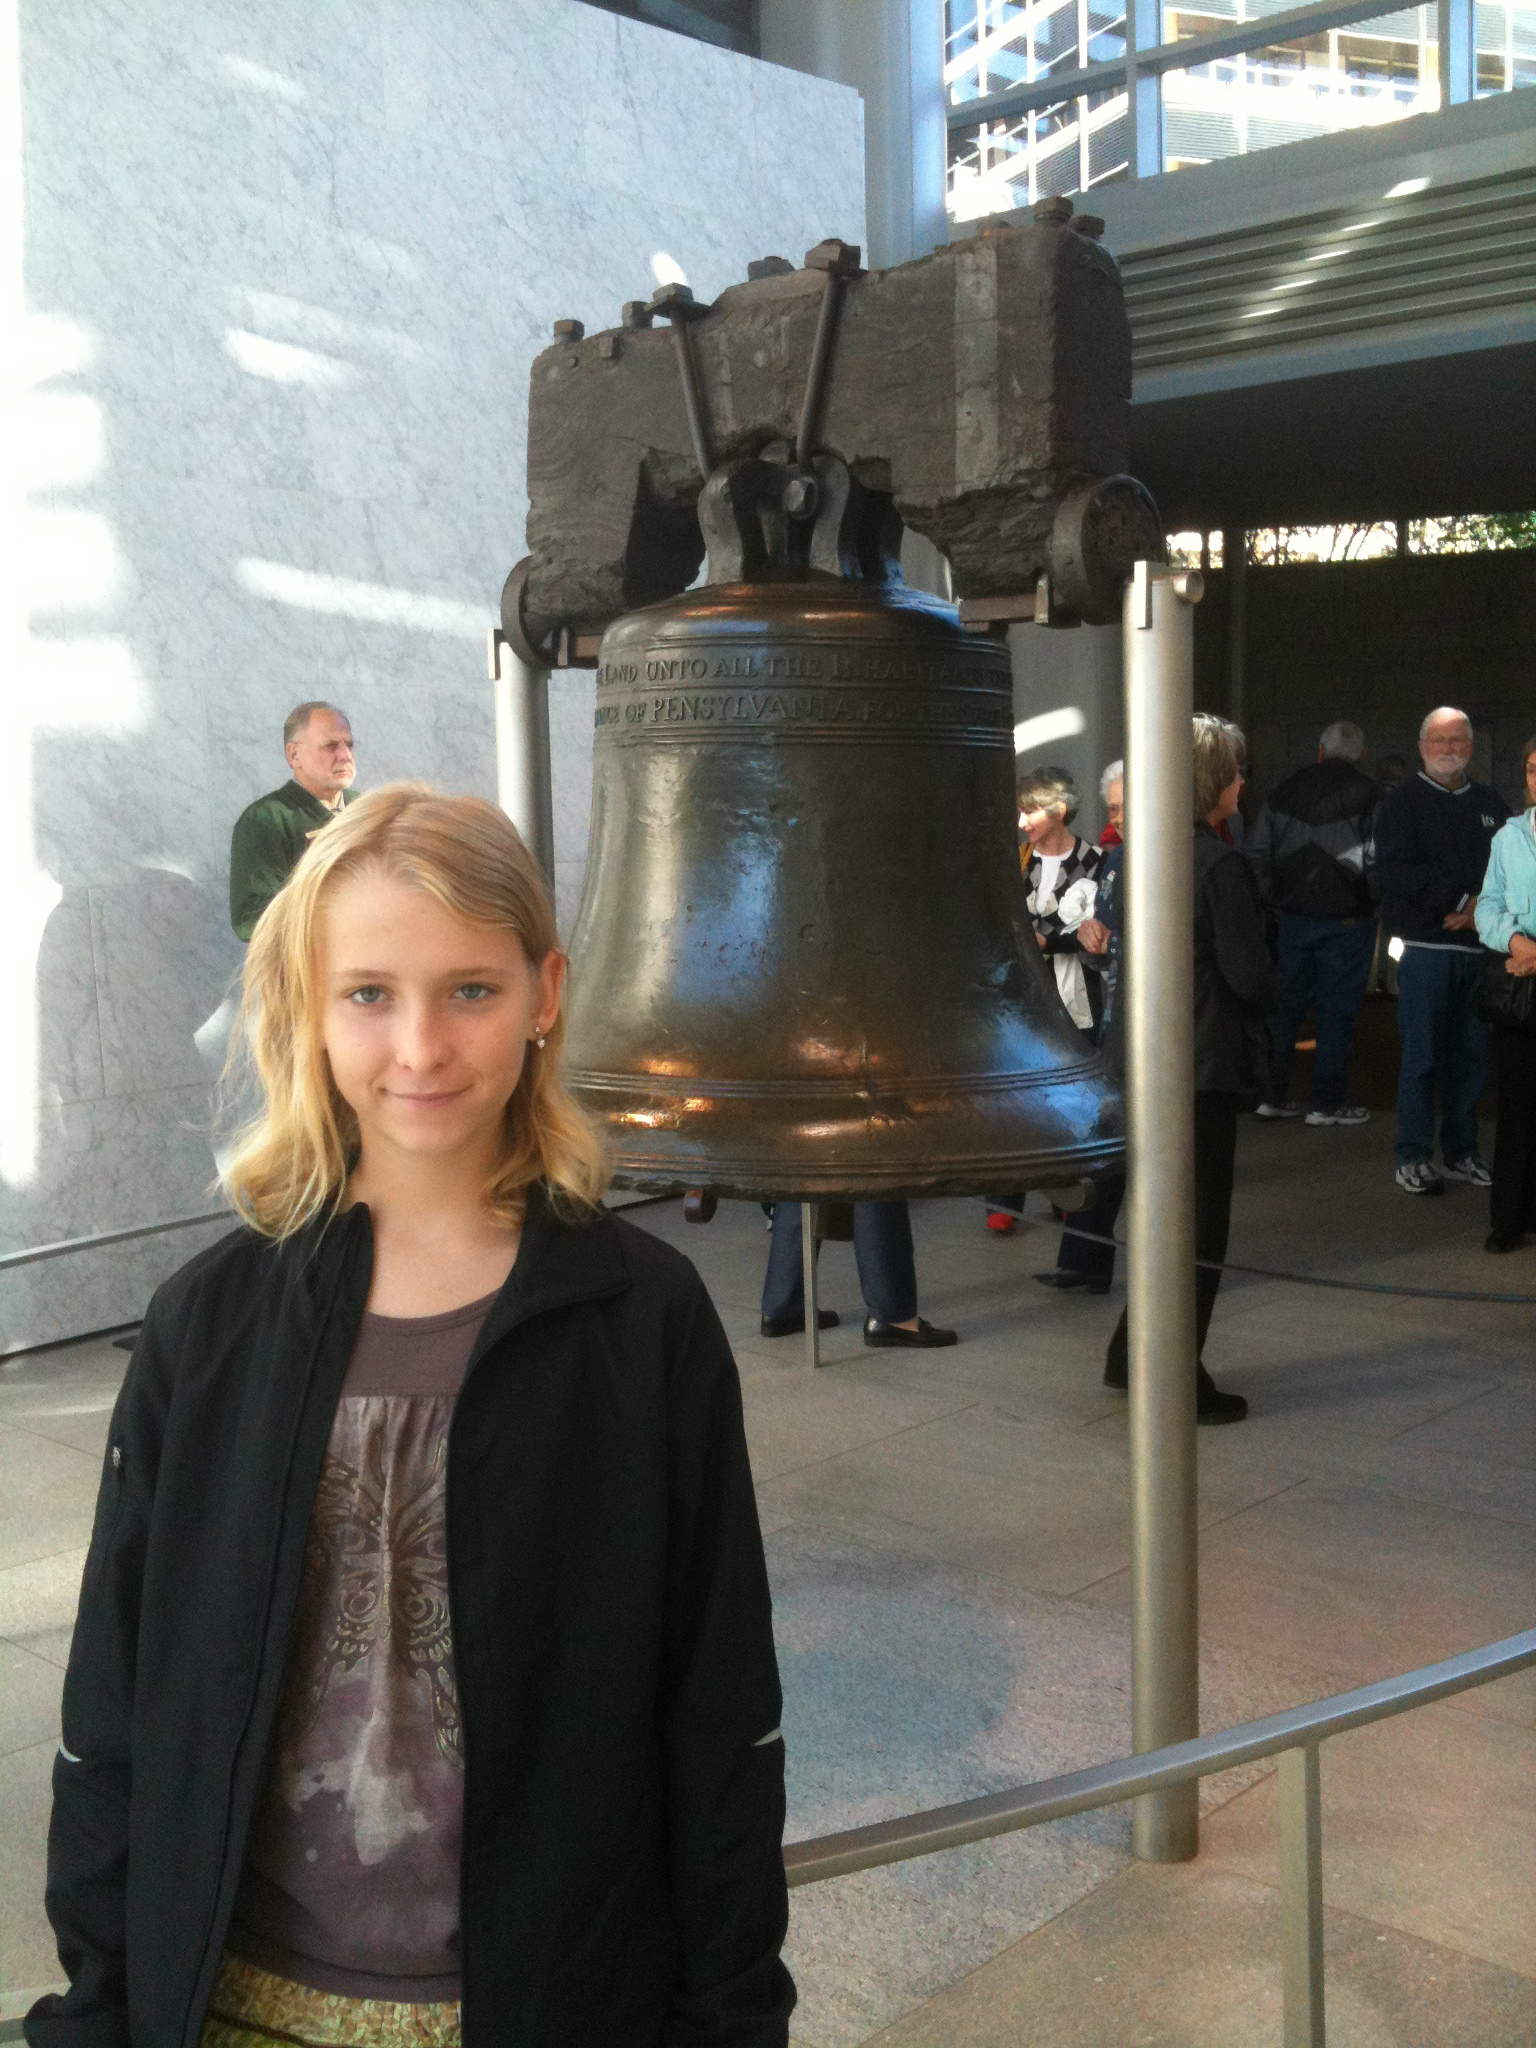 Caption: Hannah Visits the Liberty Bell , Credit: Hannah Providence